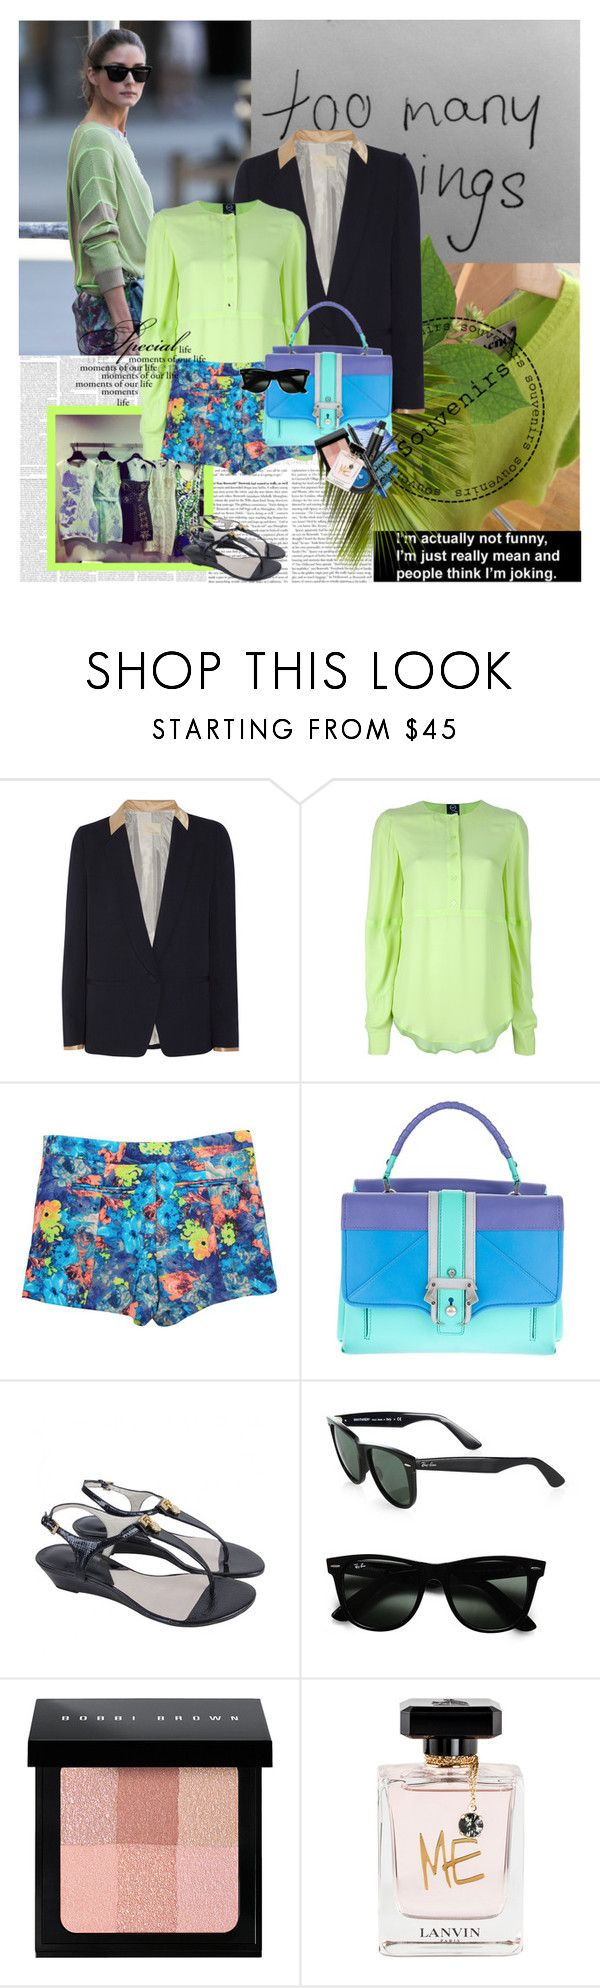 """Olivia Palermo"" by rainie-minnie ❤ liked on Polyvore featuring Band of Outsiders, McQ by Alexander McQueen, Paula Cademartori, Michael Kors, Ray-Ban, Bobbi Brown Cosmetics and Lanvin"